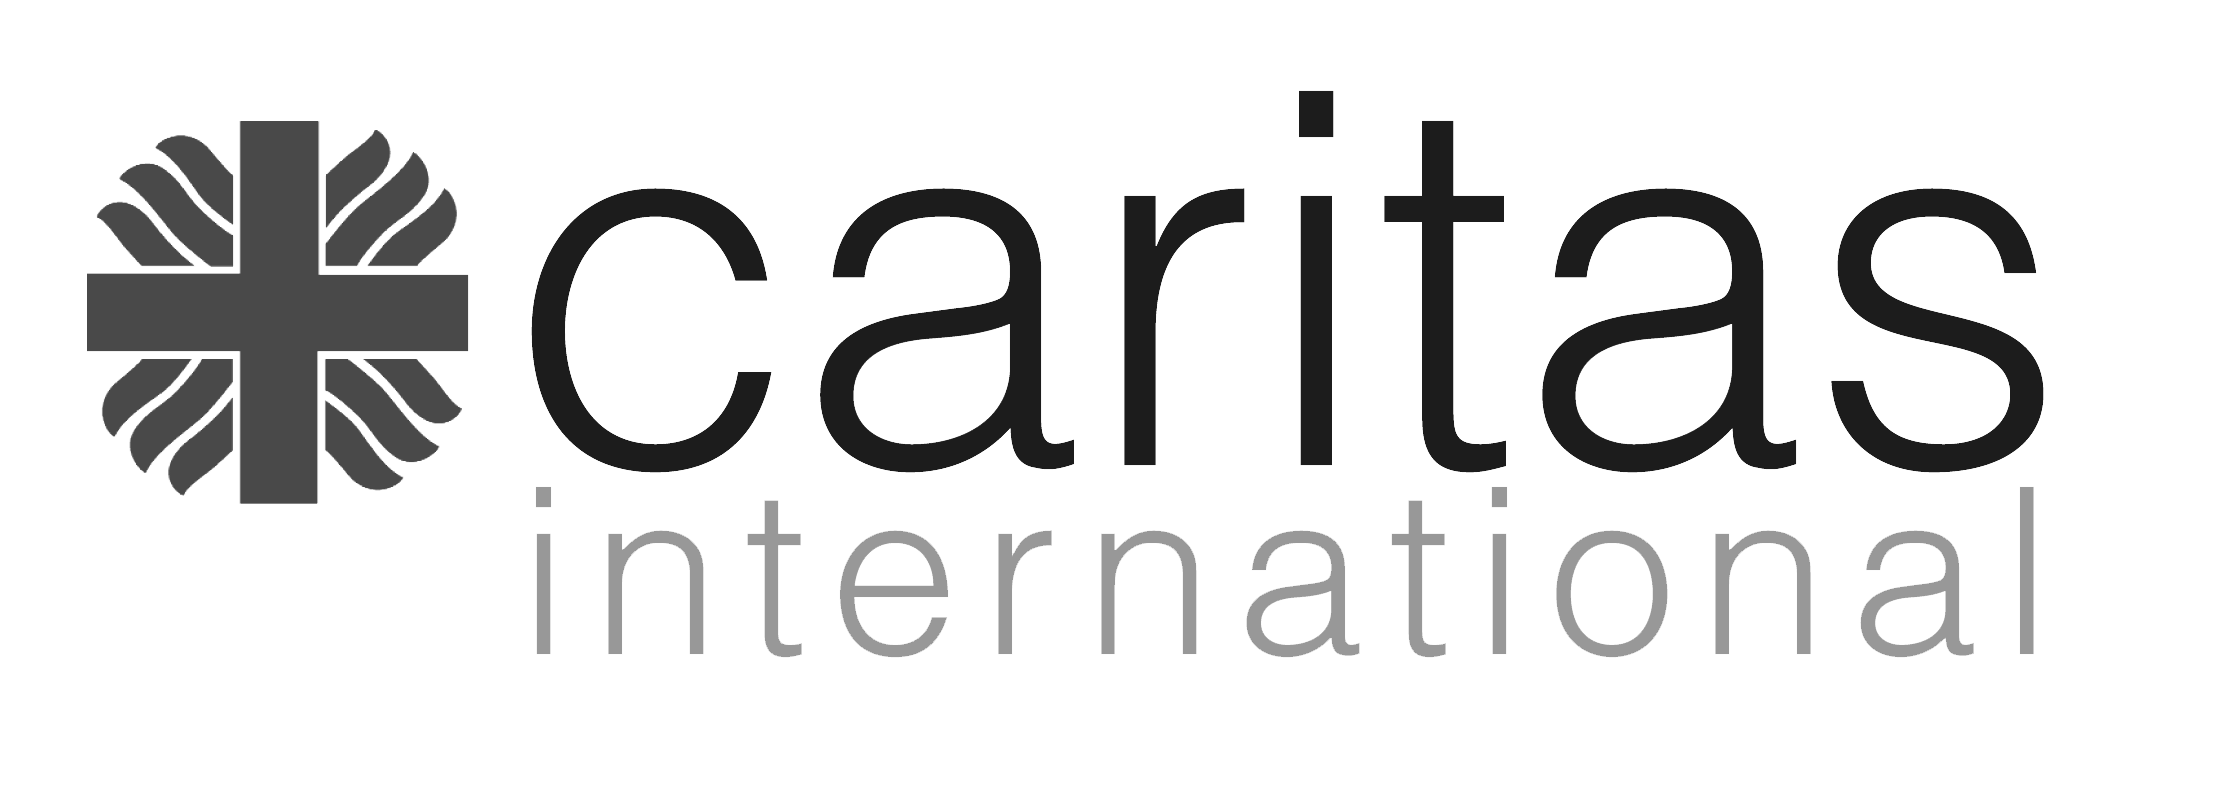 Caristas International